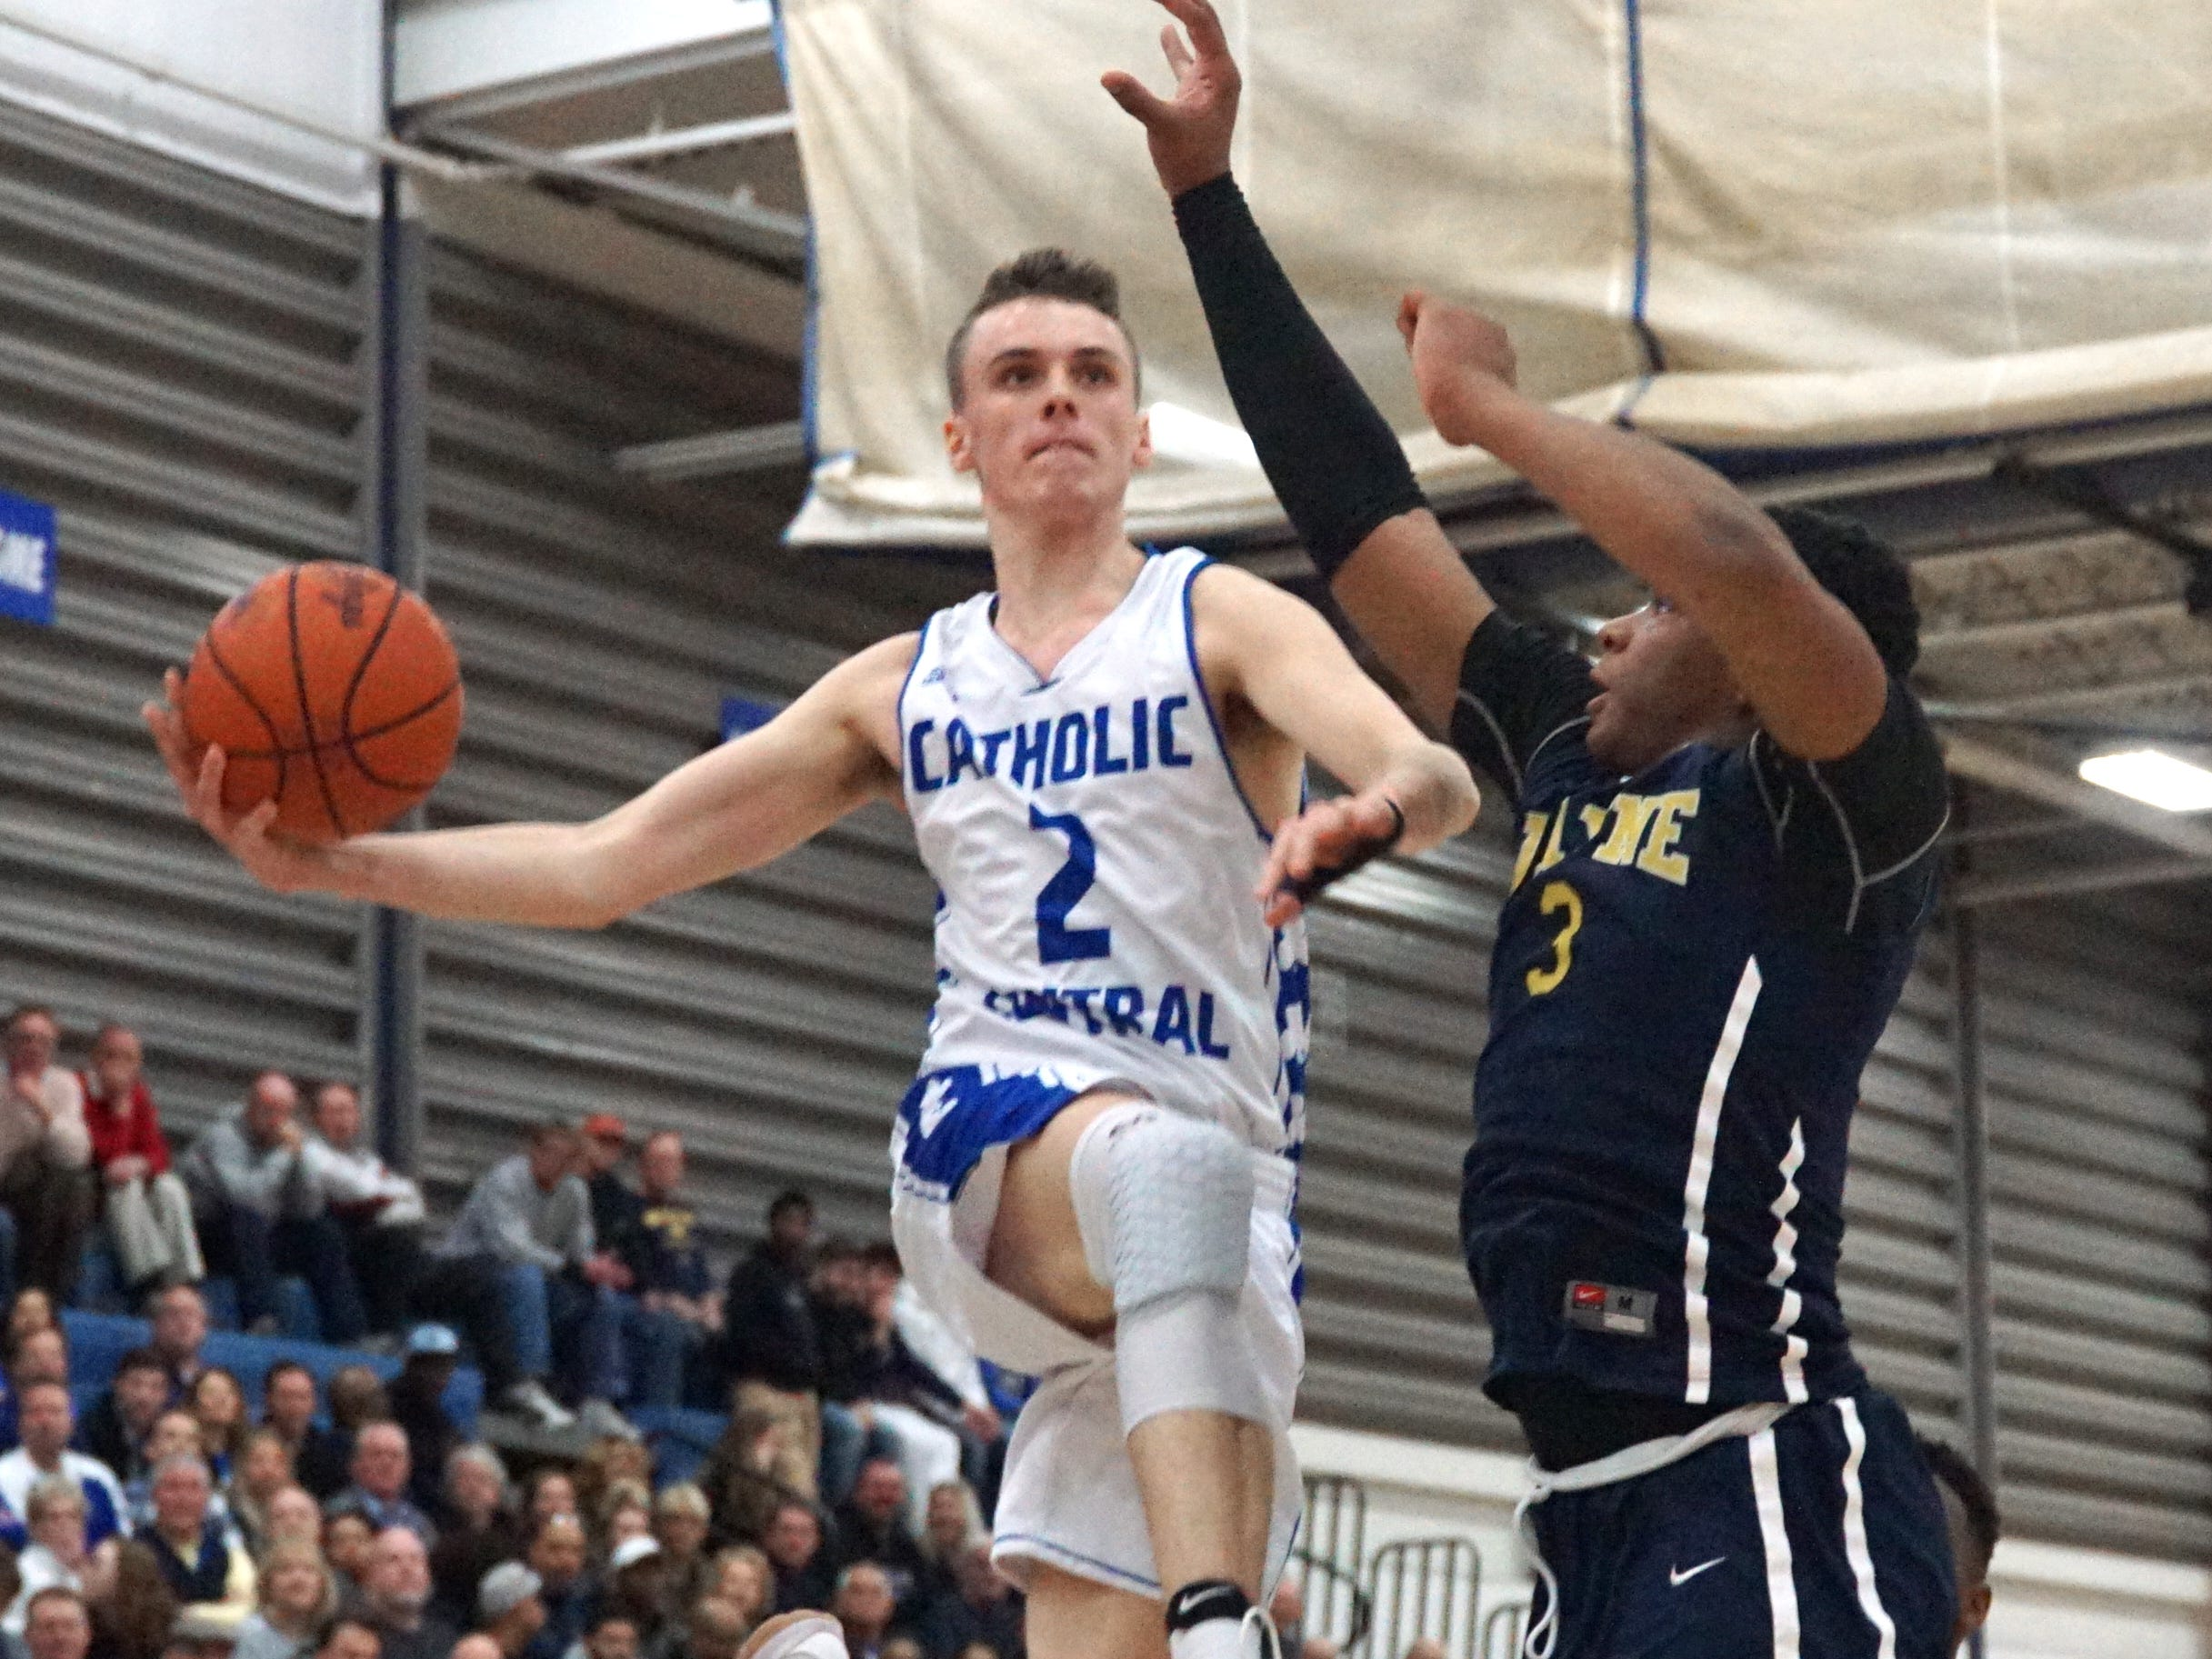 Detroit Catholic Central's Brendan Downs' Michael Jordan-esque leap from the baseline towards the net got an appreciative wow from the crowd. Cartier Muse-Suber, right, tries to defend the Shamrock.